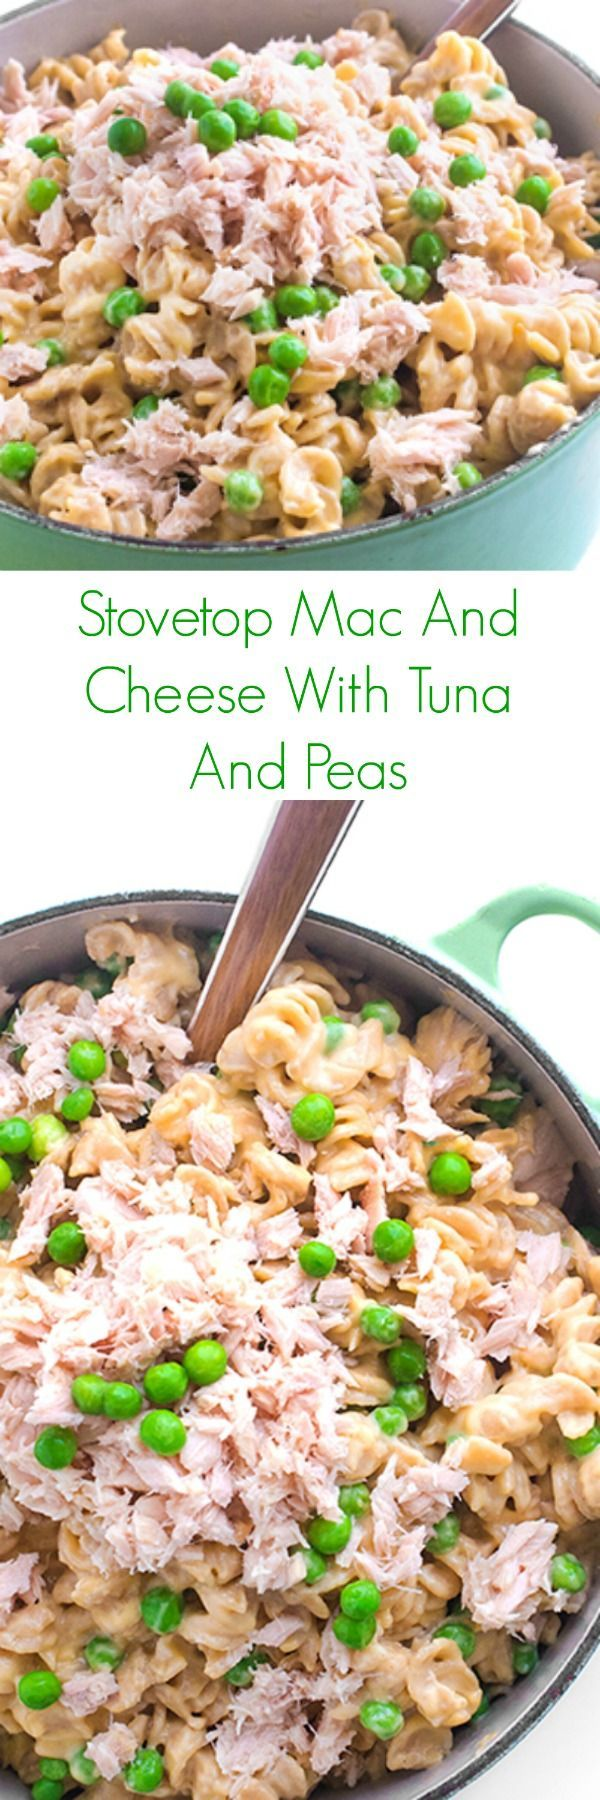 Stovetop Mac And Cheese With Tuna And Peas - A quick and easy kid-friendly pasta recipe, this Stovetop Mac and Cheese with Tuna and Peas is sure to be a family favorite weeknight dinner!